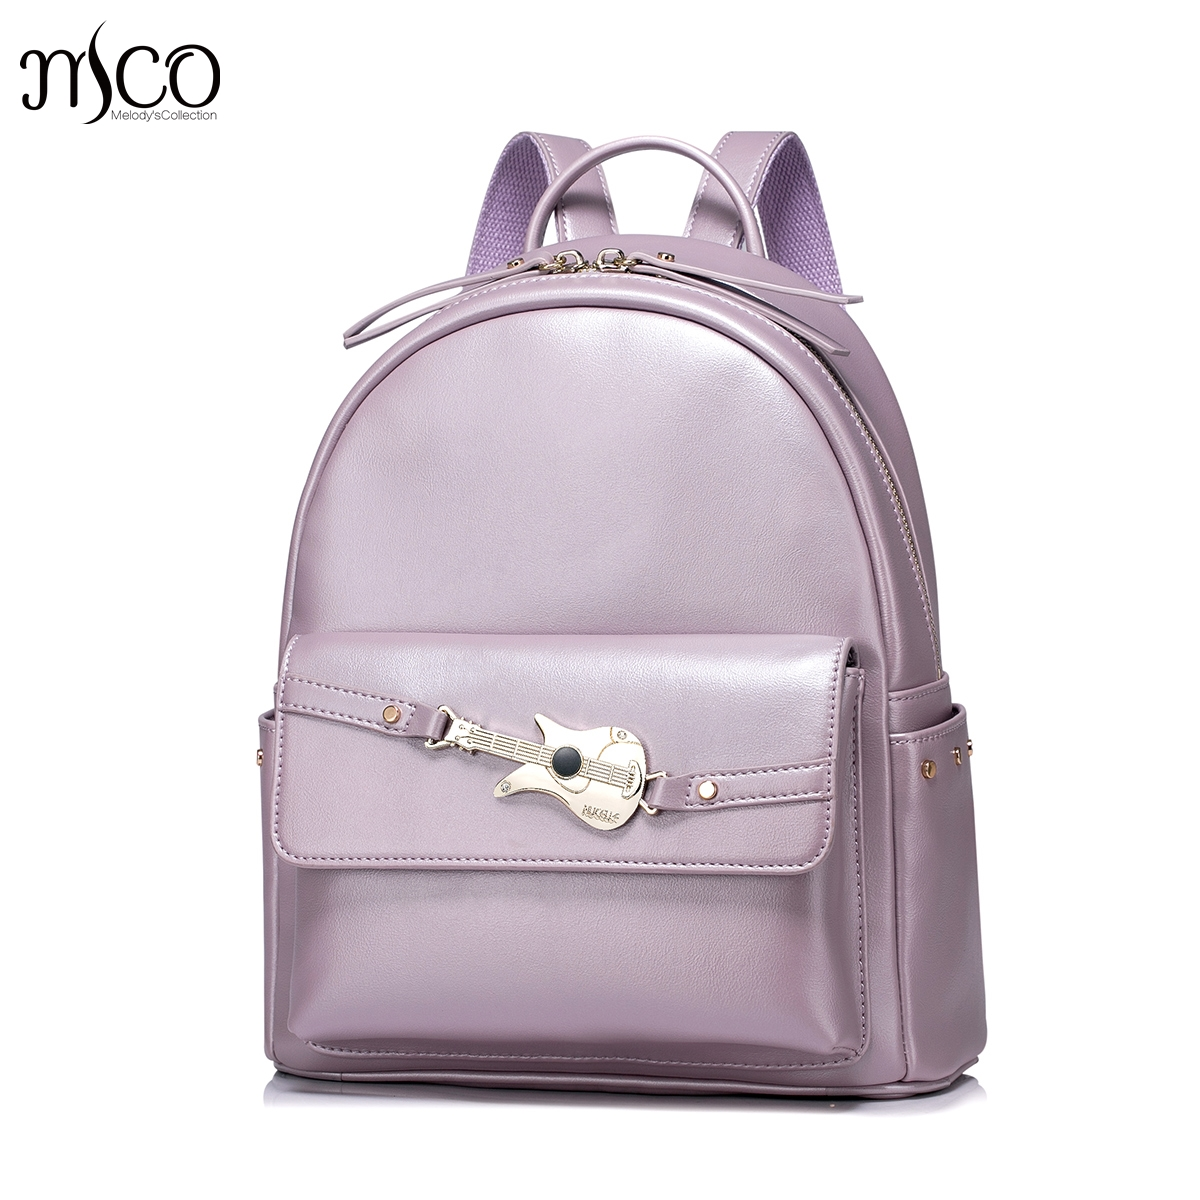 Women PU Leather Backpack Fashion Guitar Female Elegant Daily Box Shoulder Bags Ladies Daypack Girls Rivets Travel Rucksack mma backpack box ing shoulder ufc memory gifts daypack for friends